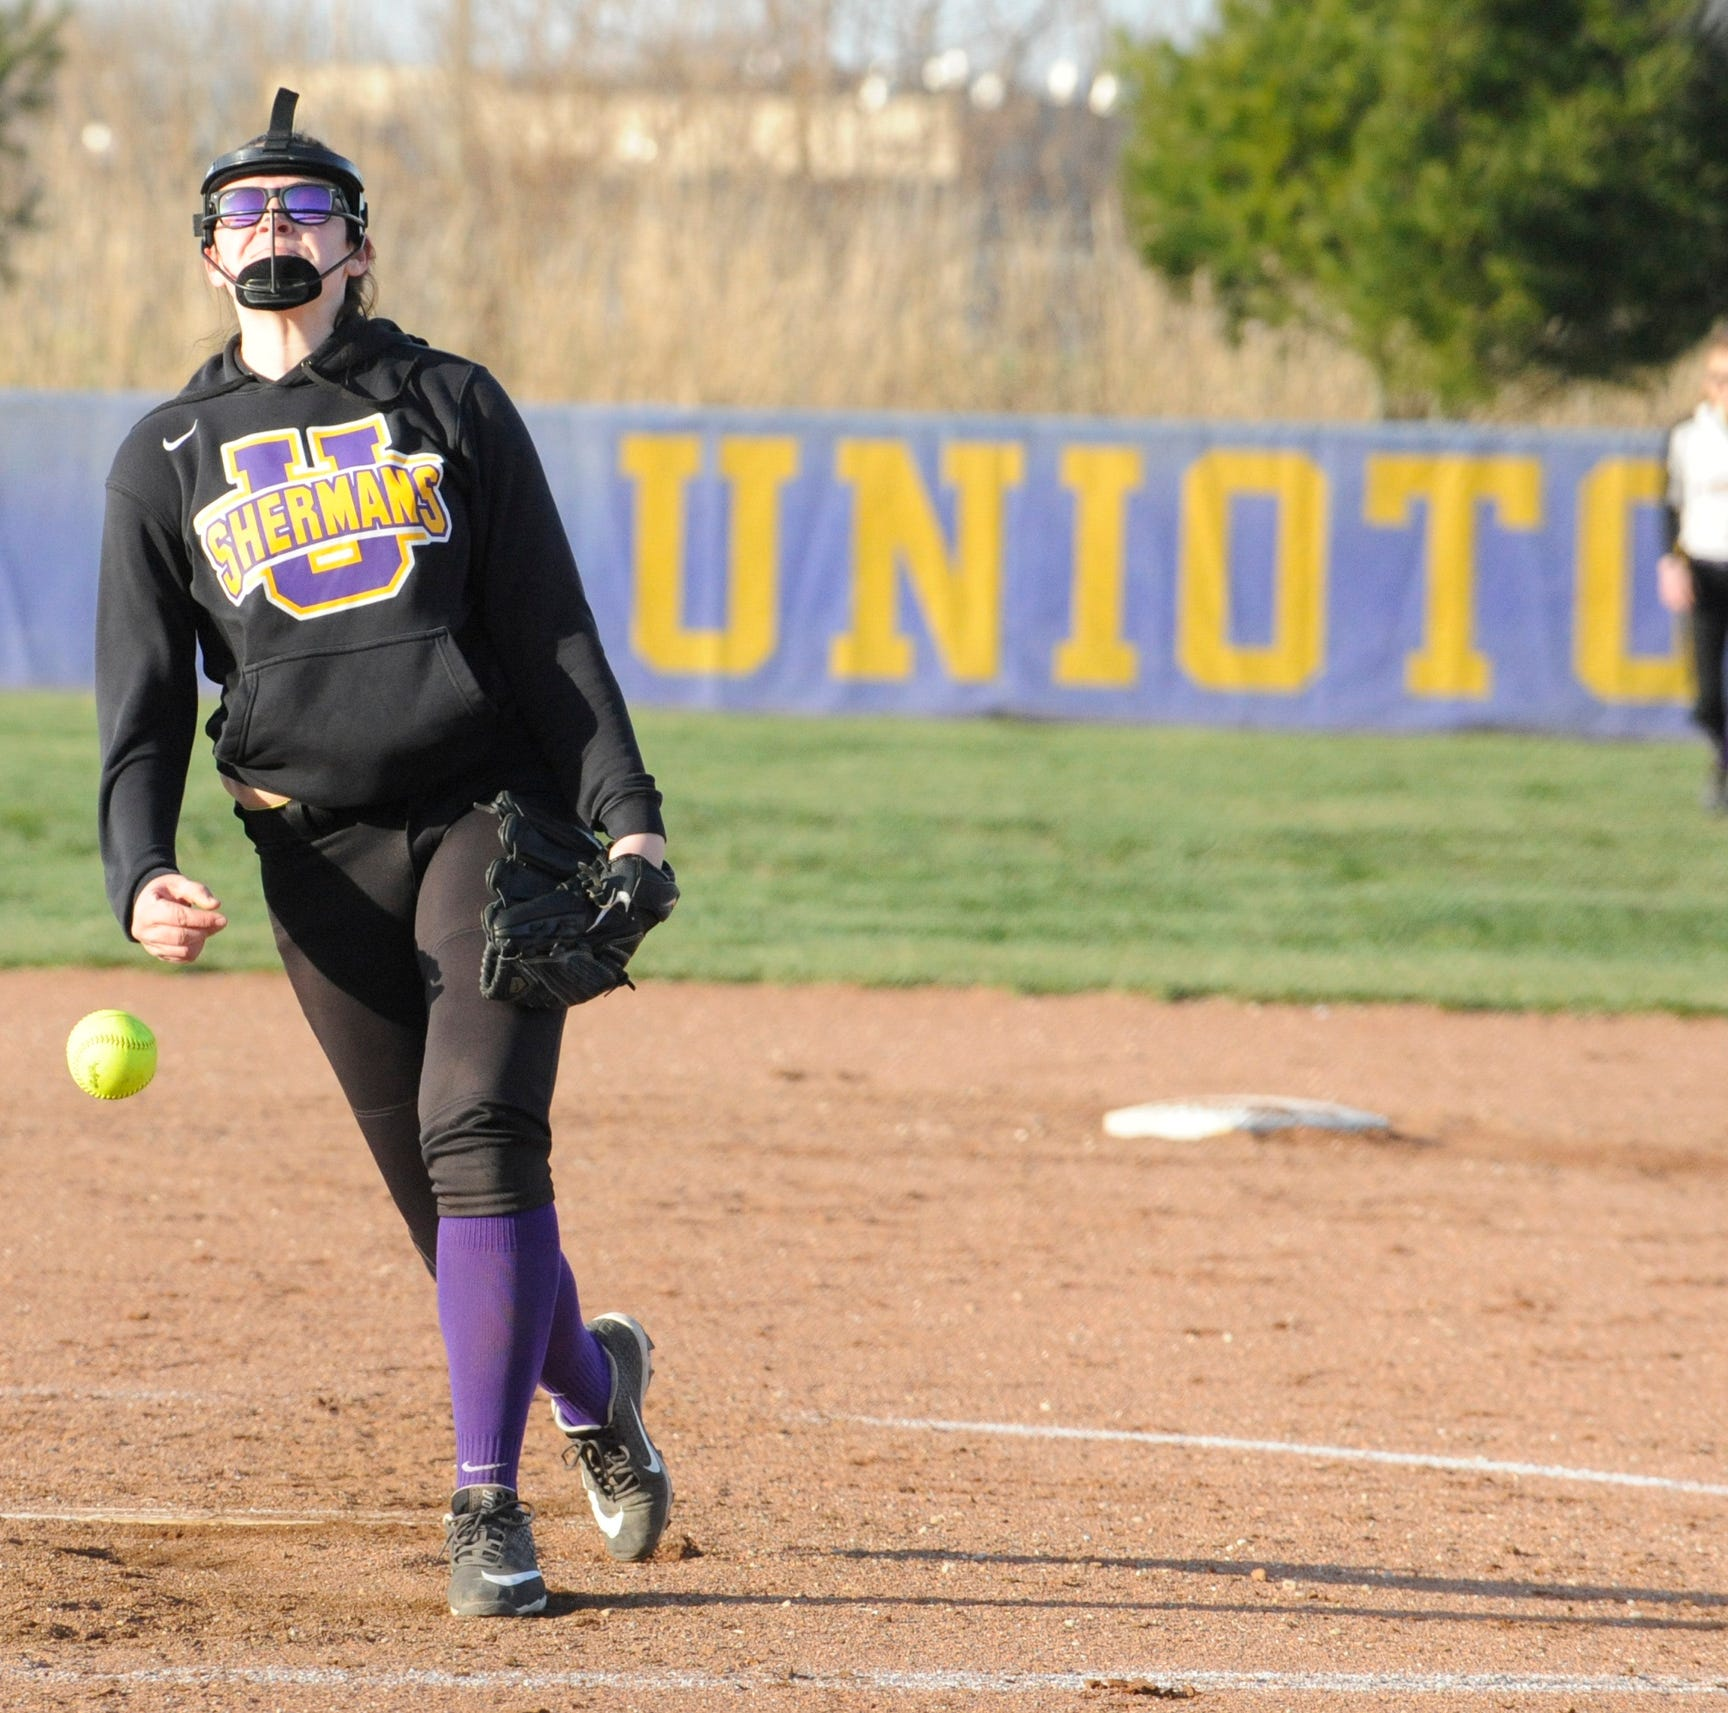 OHIO HS SOFTBALL: Unioto defeats Huntington 12-2 behind eight-run second inning